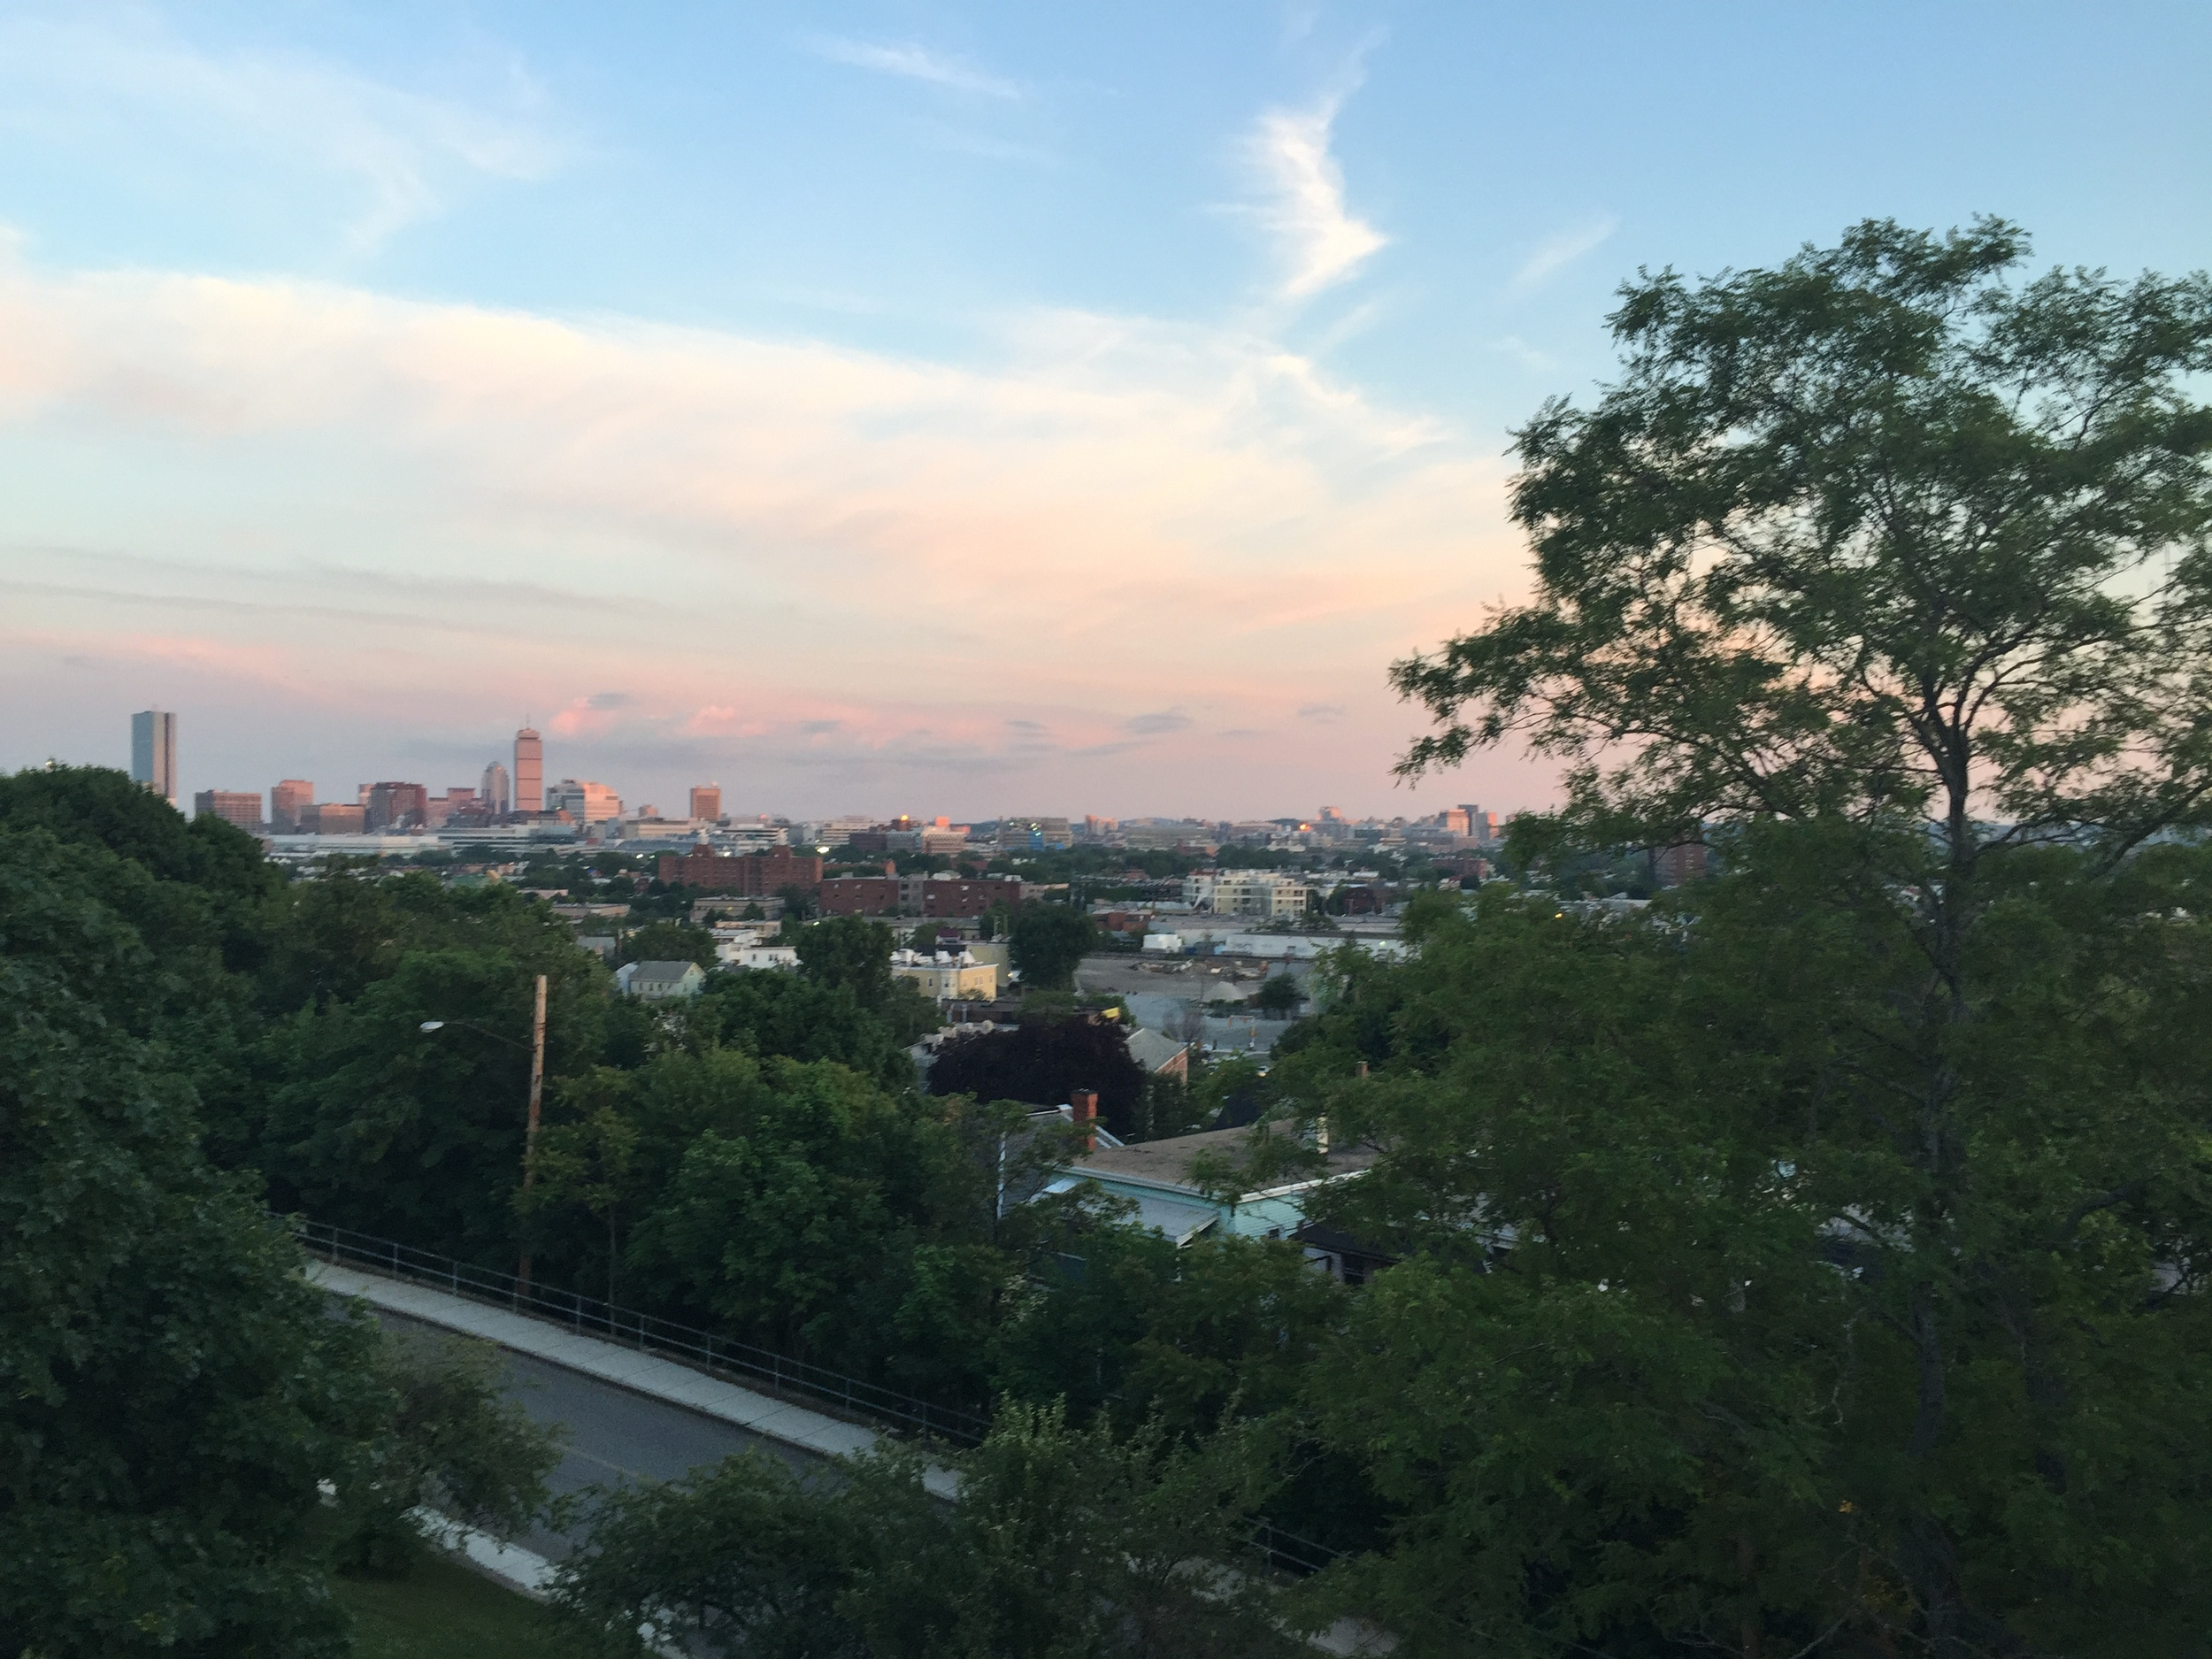 An evening walk to Prospect Hill yielded a beautiful view of Boston.